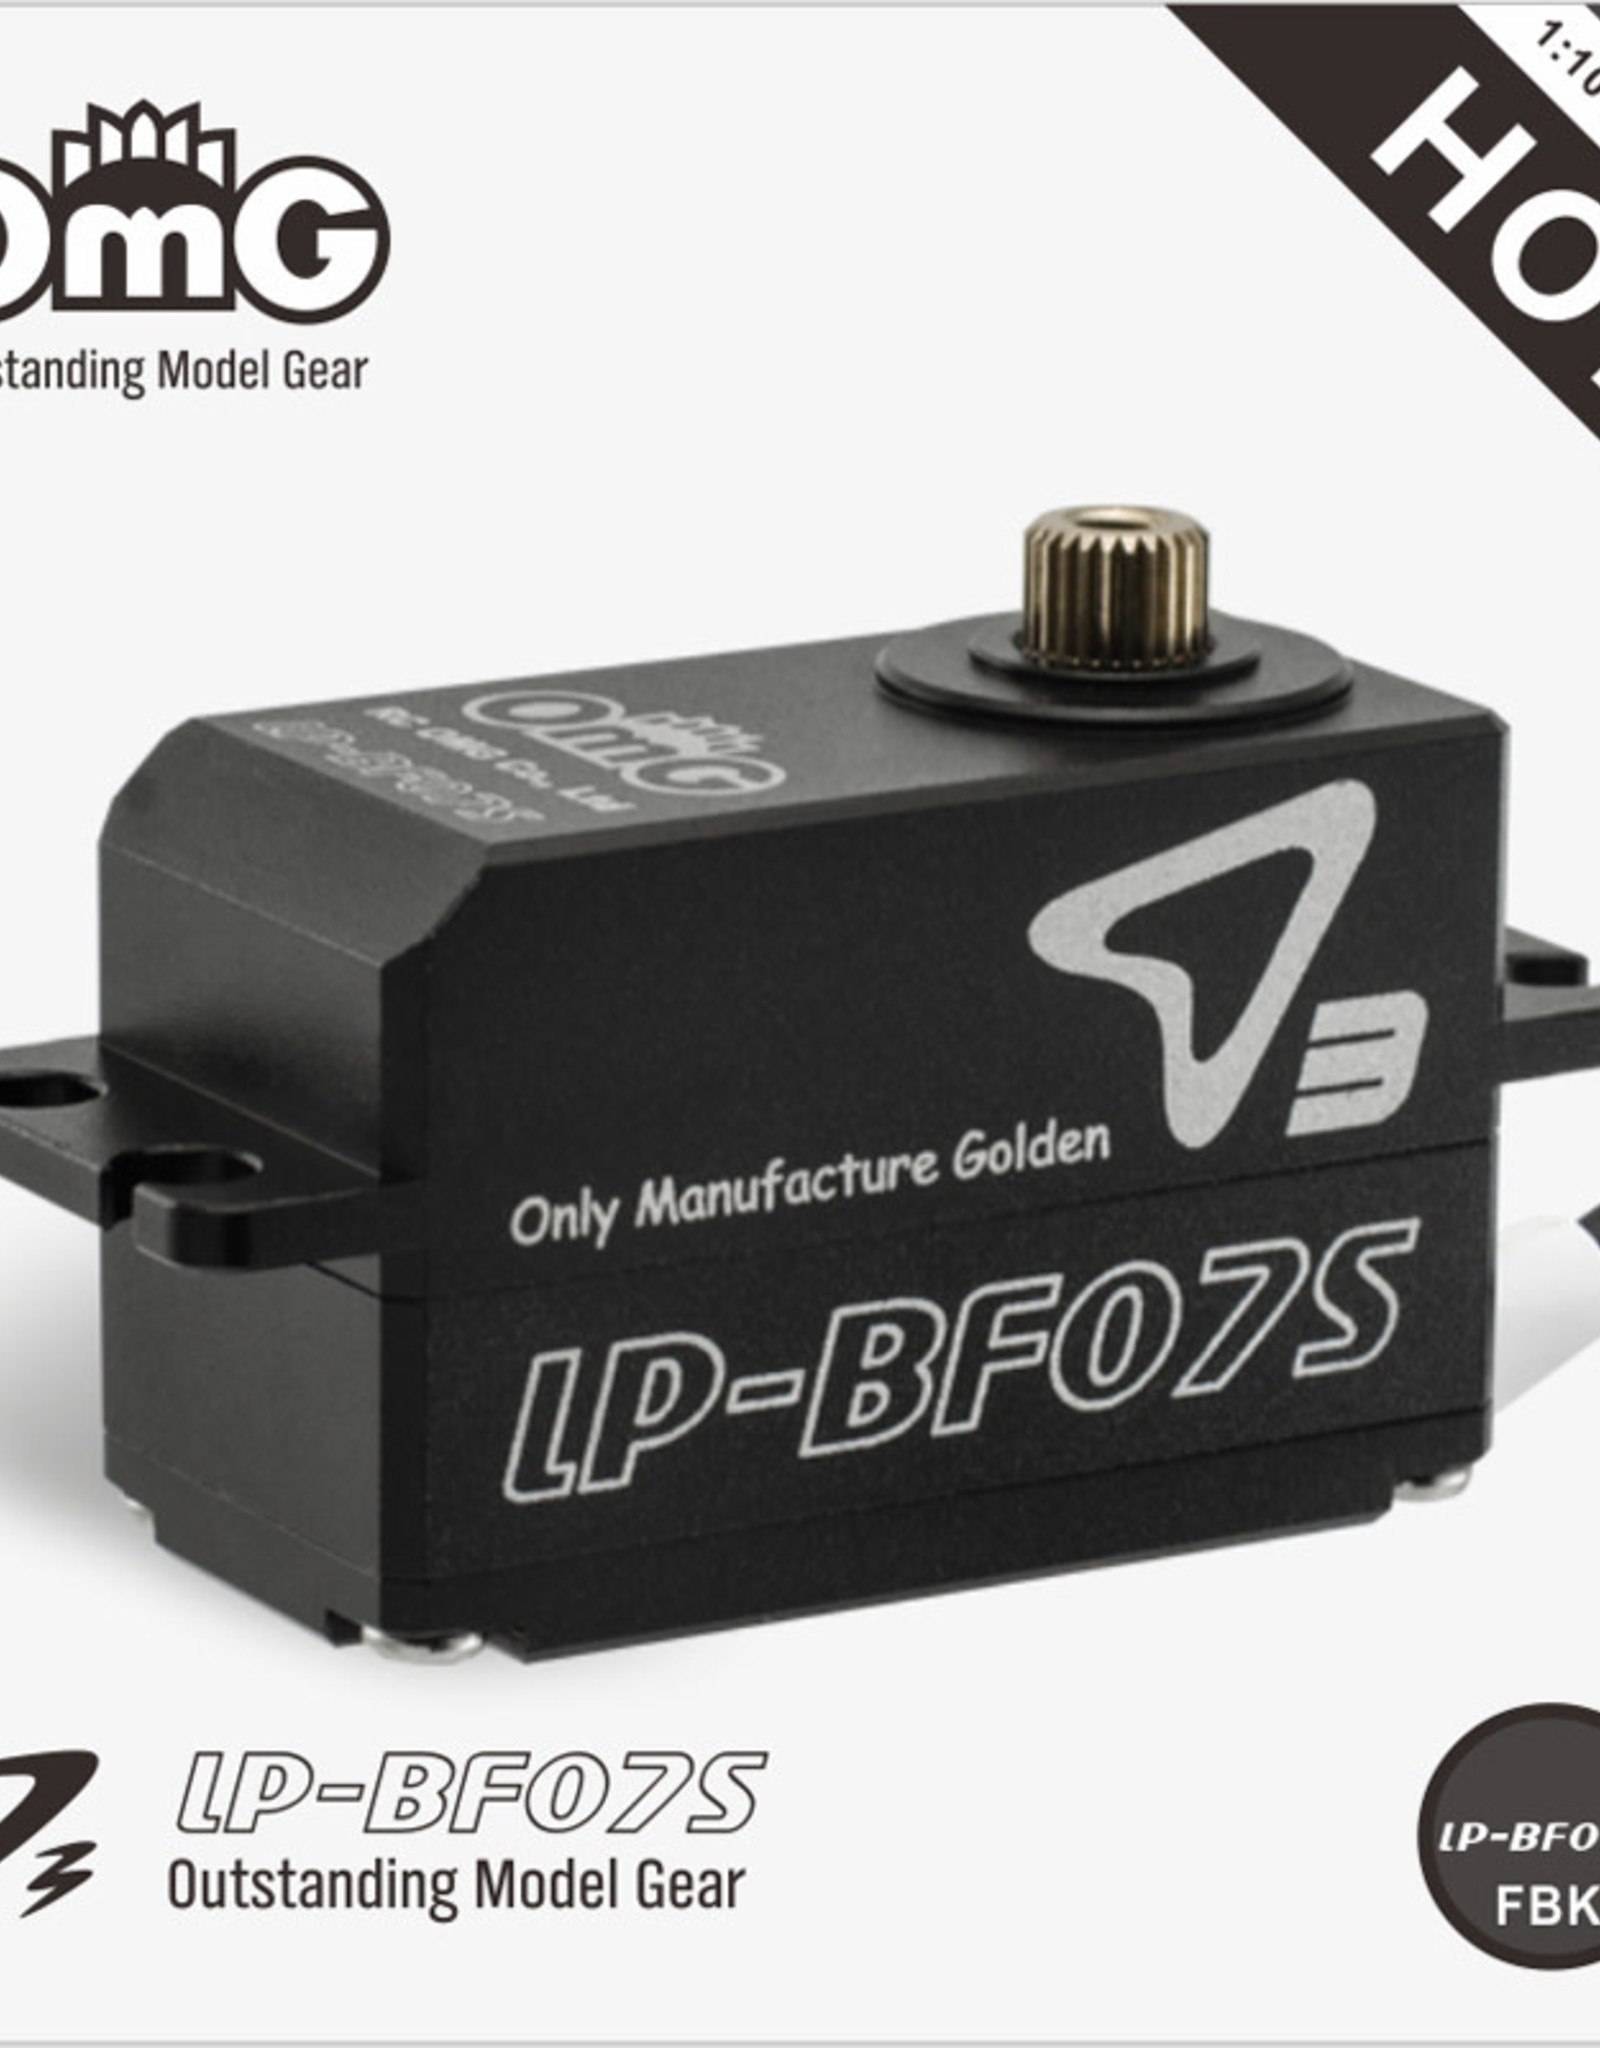 OmG OMGD3-LP-BF07S-FB Low-Pro Full Metal Brushless Digital Servo (Full Black) - RCOMG D3-LP-BF07S-FB